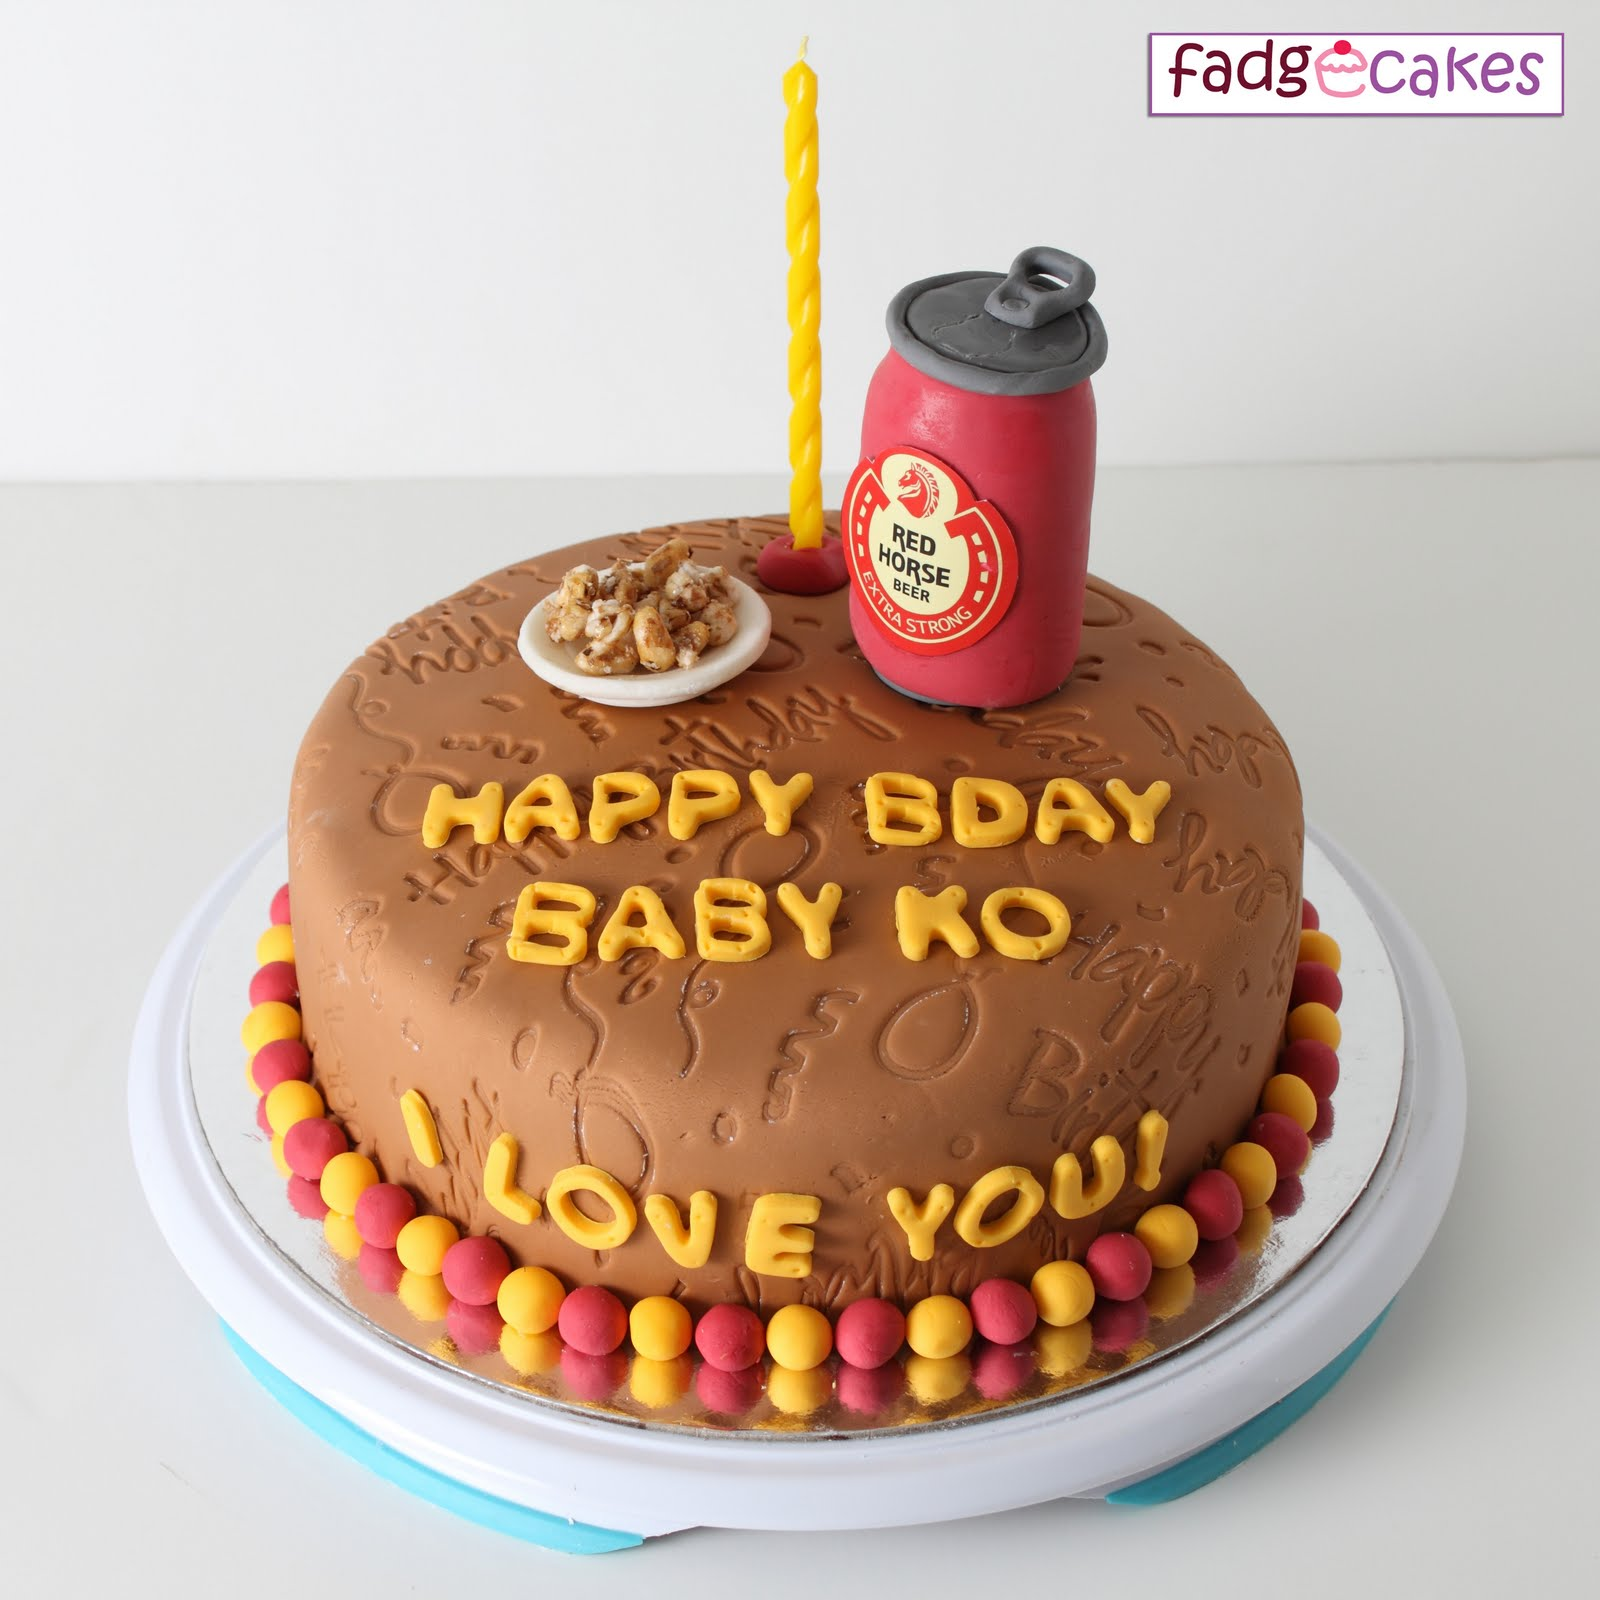 Red Horse Cake Design : fadgecakes: Red Horse Beer Cake with Pulutan